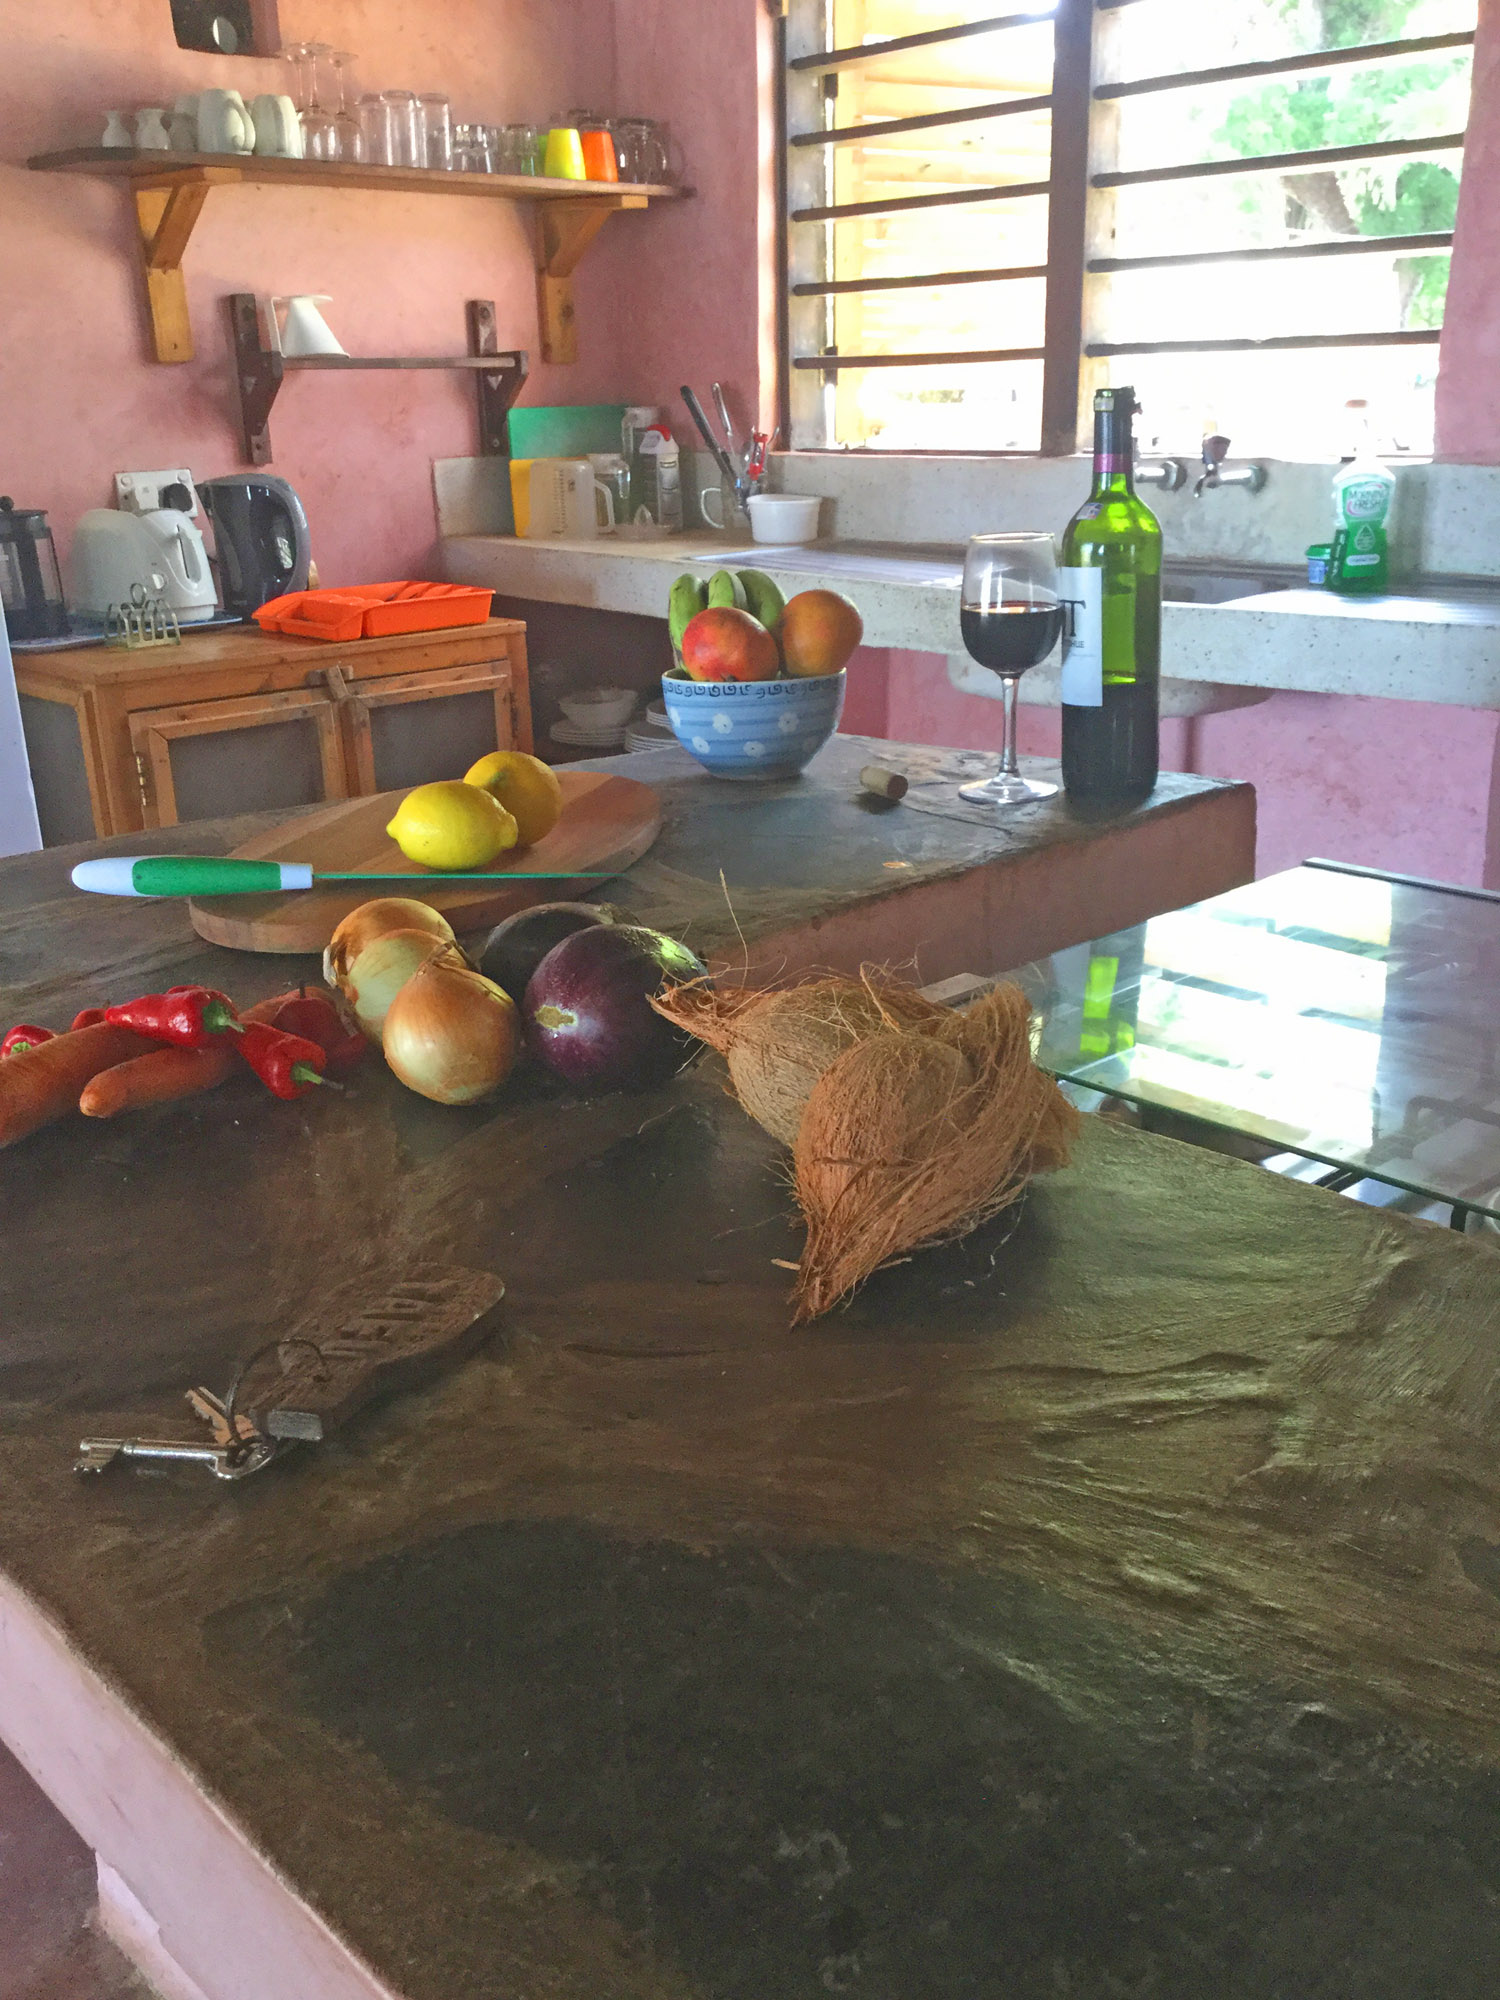 Meal preparation in the kitchen at Tafi